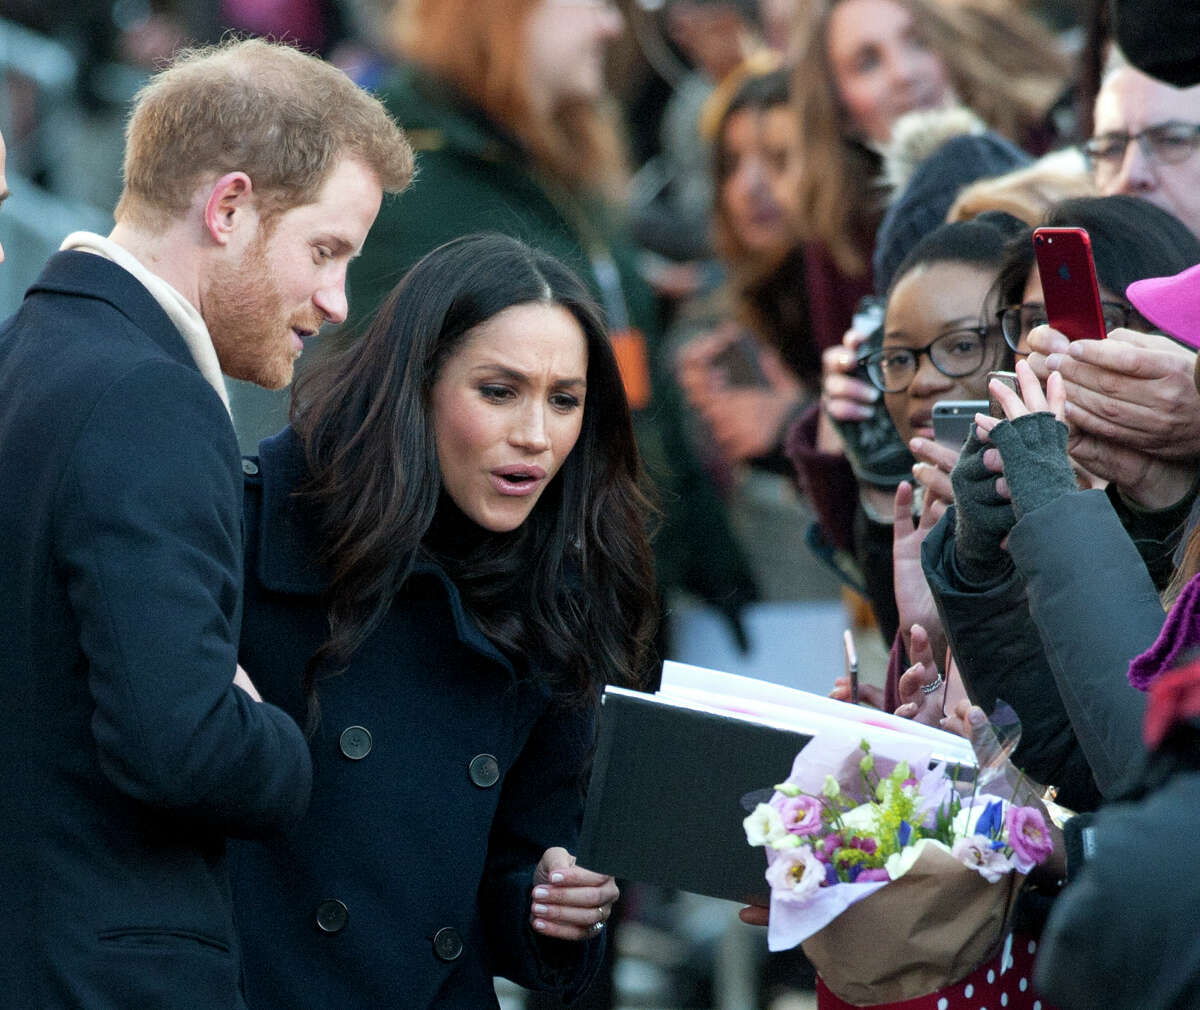 Britain's Prince Harry and his fiancee Meghan Markle, on their first official public engagement, take part in a walkabout en route to visiting the Terrence Higgins Trust World AIDS Day charity fair at the Contemporary Centre in Nottingham, England, Friday Dec. 1, 2017. It was announced on Monday that Prince Harry and American actress Meghan Markle are engaged and will marry in the spring of 2018. (AP Photo/Rui Vieira) ORG XMIT: BRV103